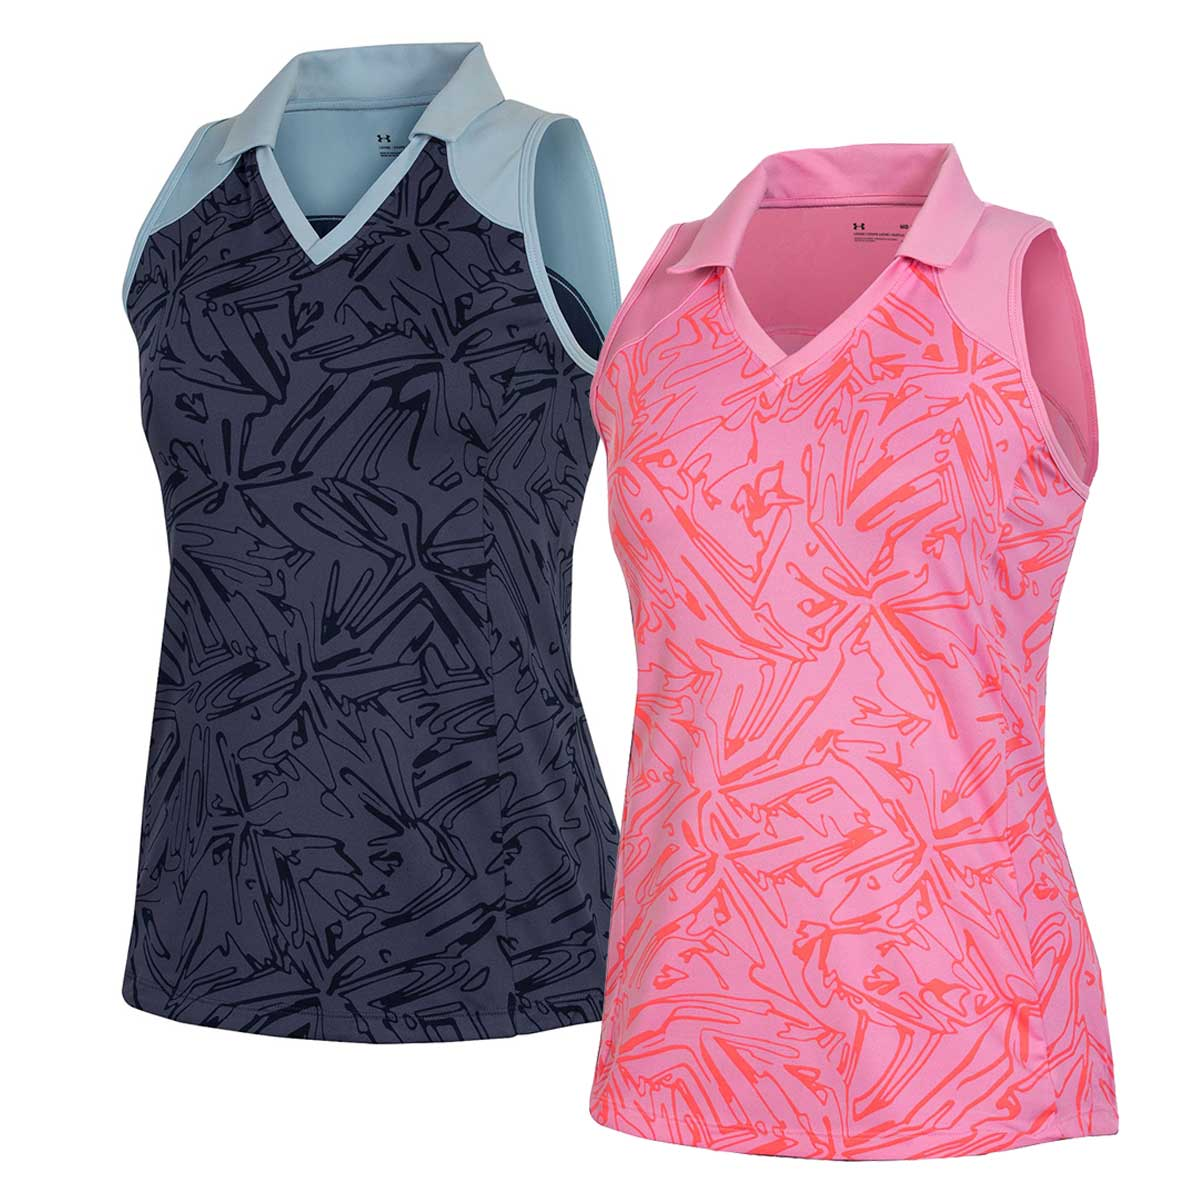 Under Armour Women's Zinger Trace Print Sleeveless Polo